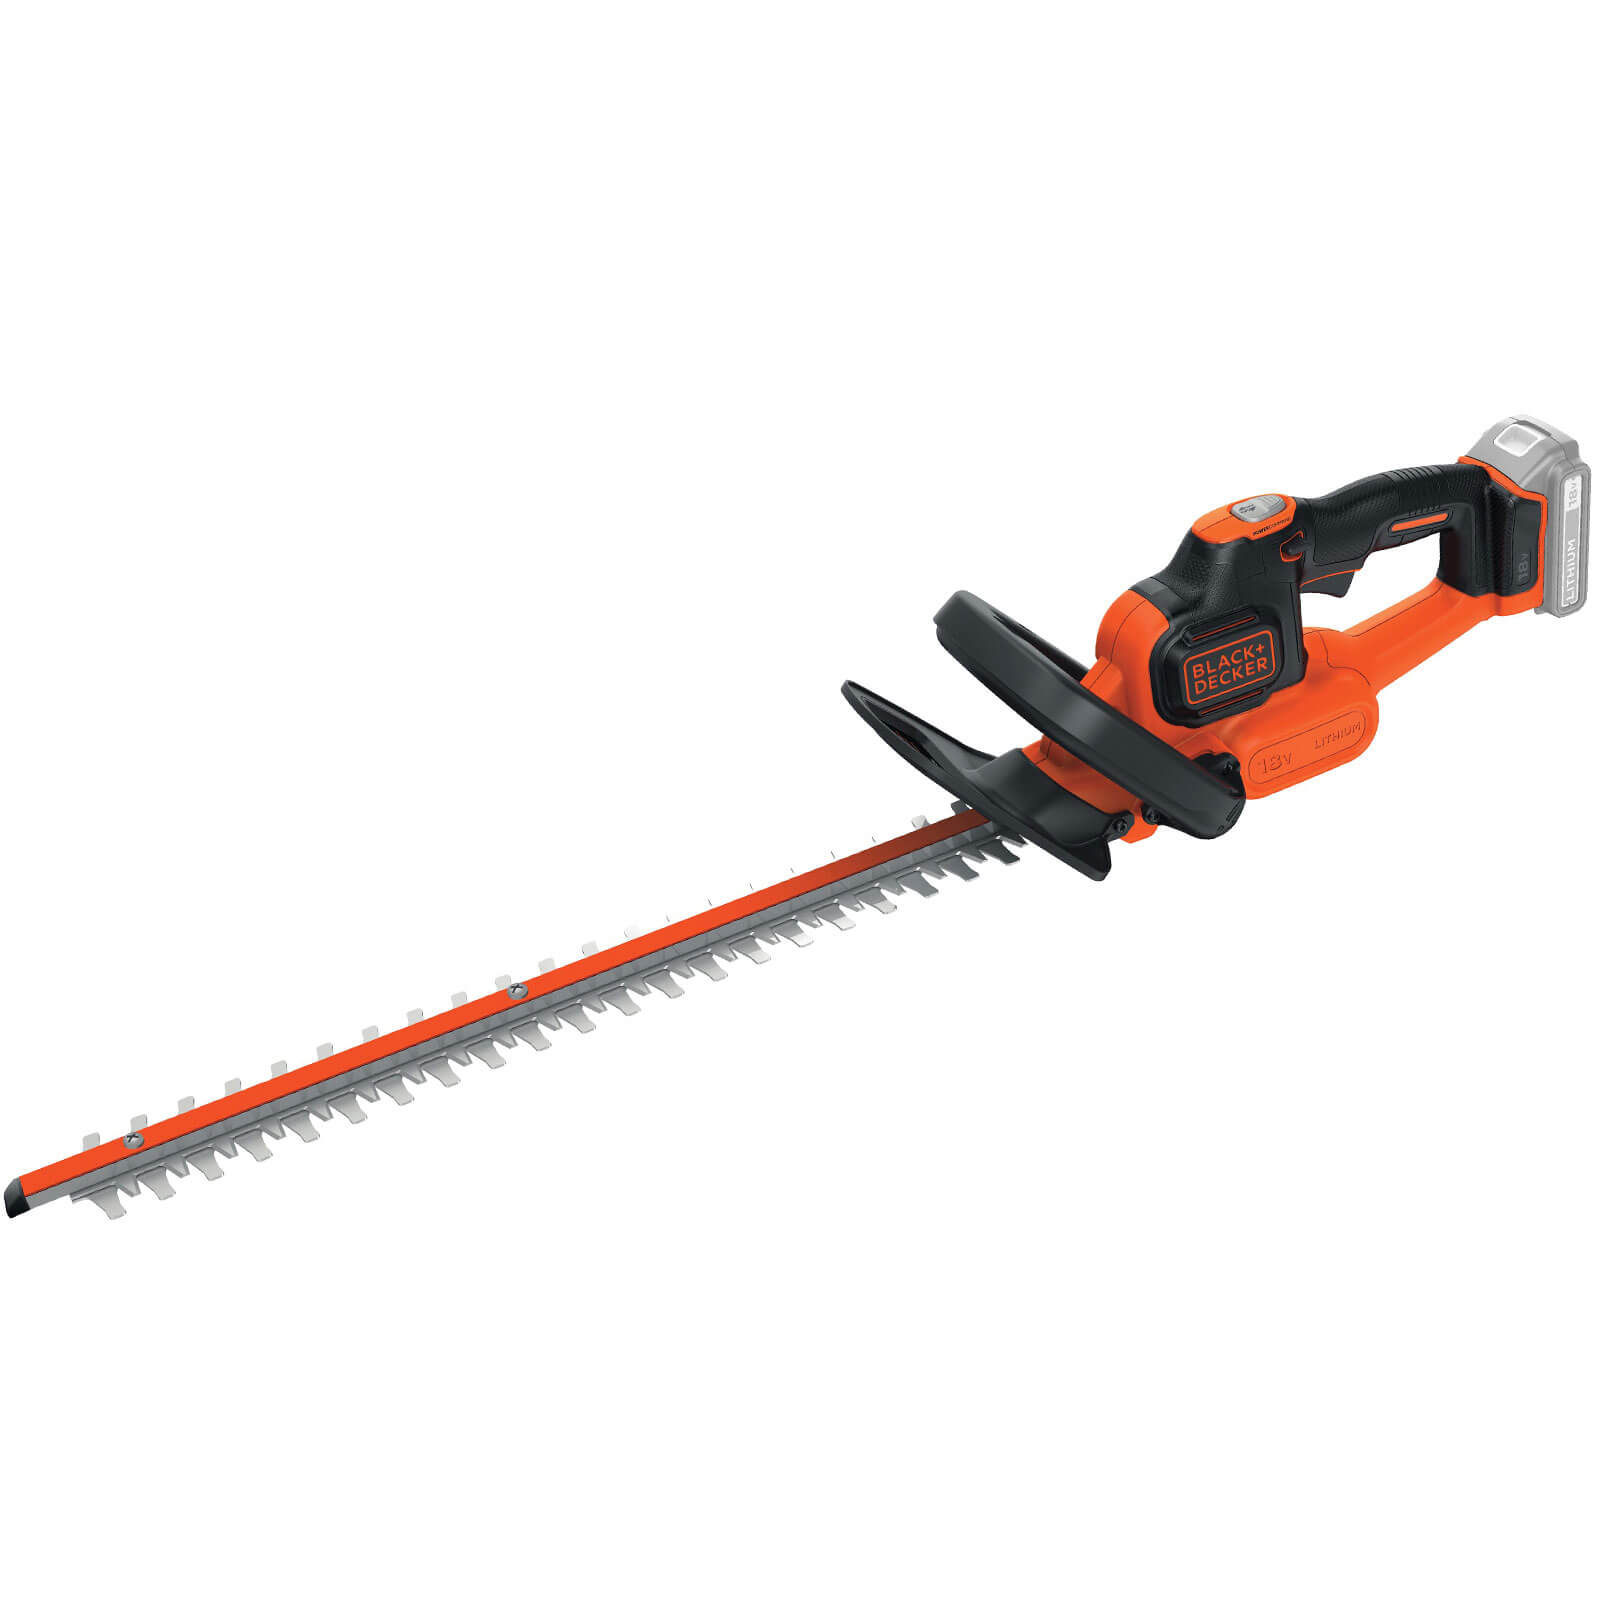 Black and Decker GTC18452PC 18v Cordless Hedge Trimmer 450mm No Batteries No Charger